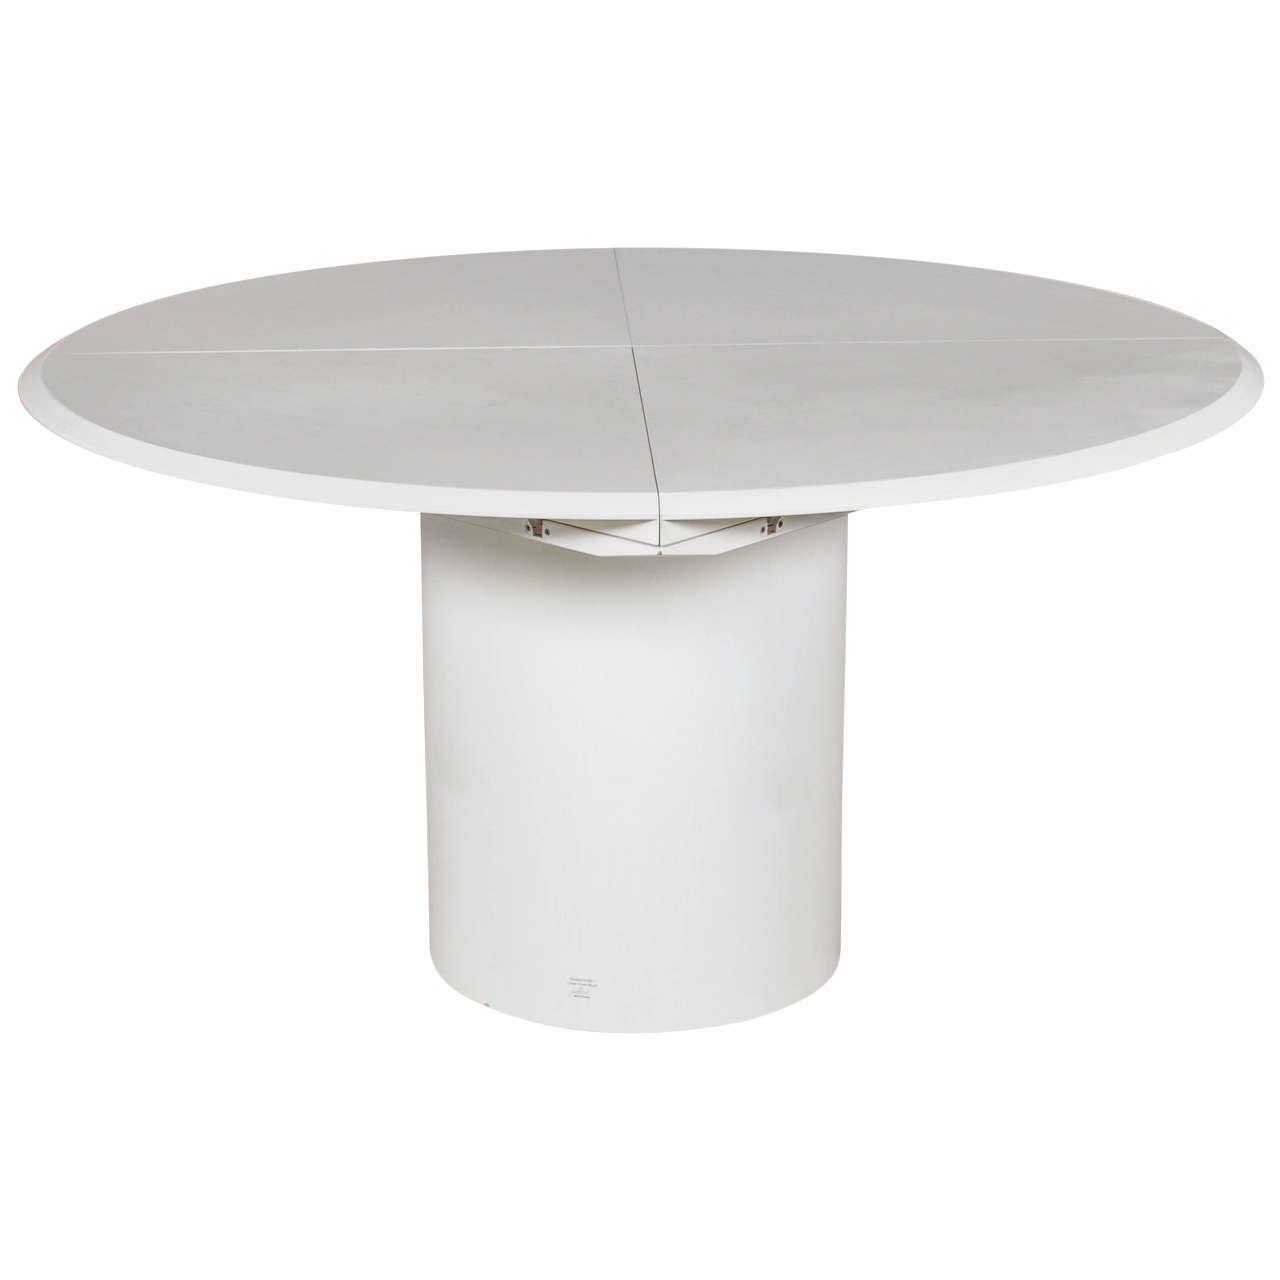 Multifunctional Round, Square And Oval Dining Table For Rosenthal  Einrichtung For Sale